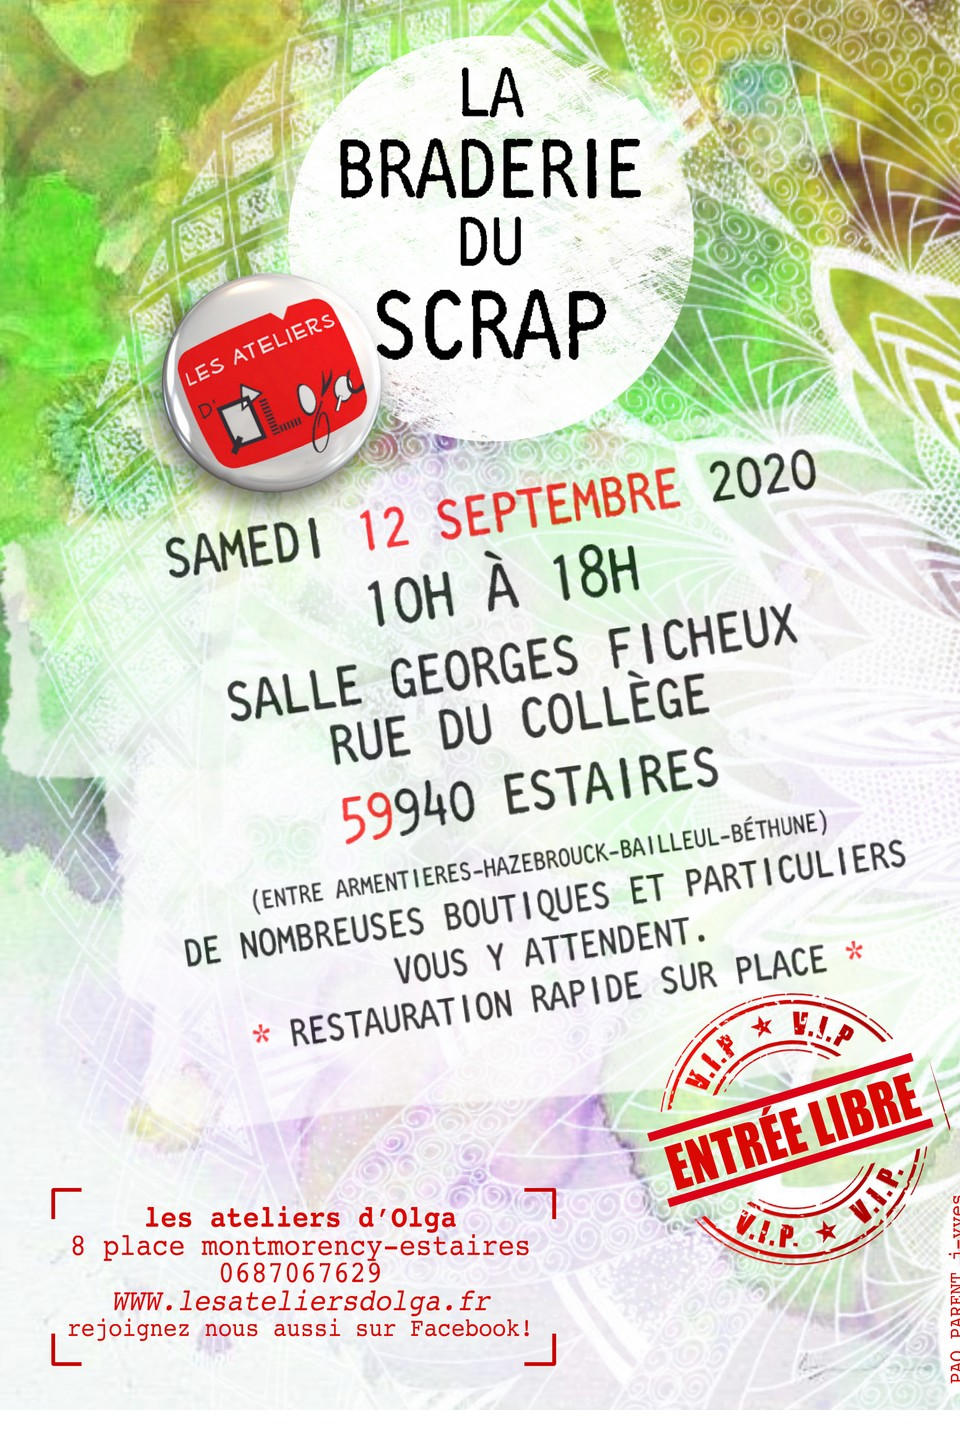 La braderie du Scrap à Estaires salon scrap scrapbooking kit mini-album scrapbook couleursenfolie isabelle lafolie les kits de couleurs en folie